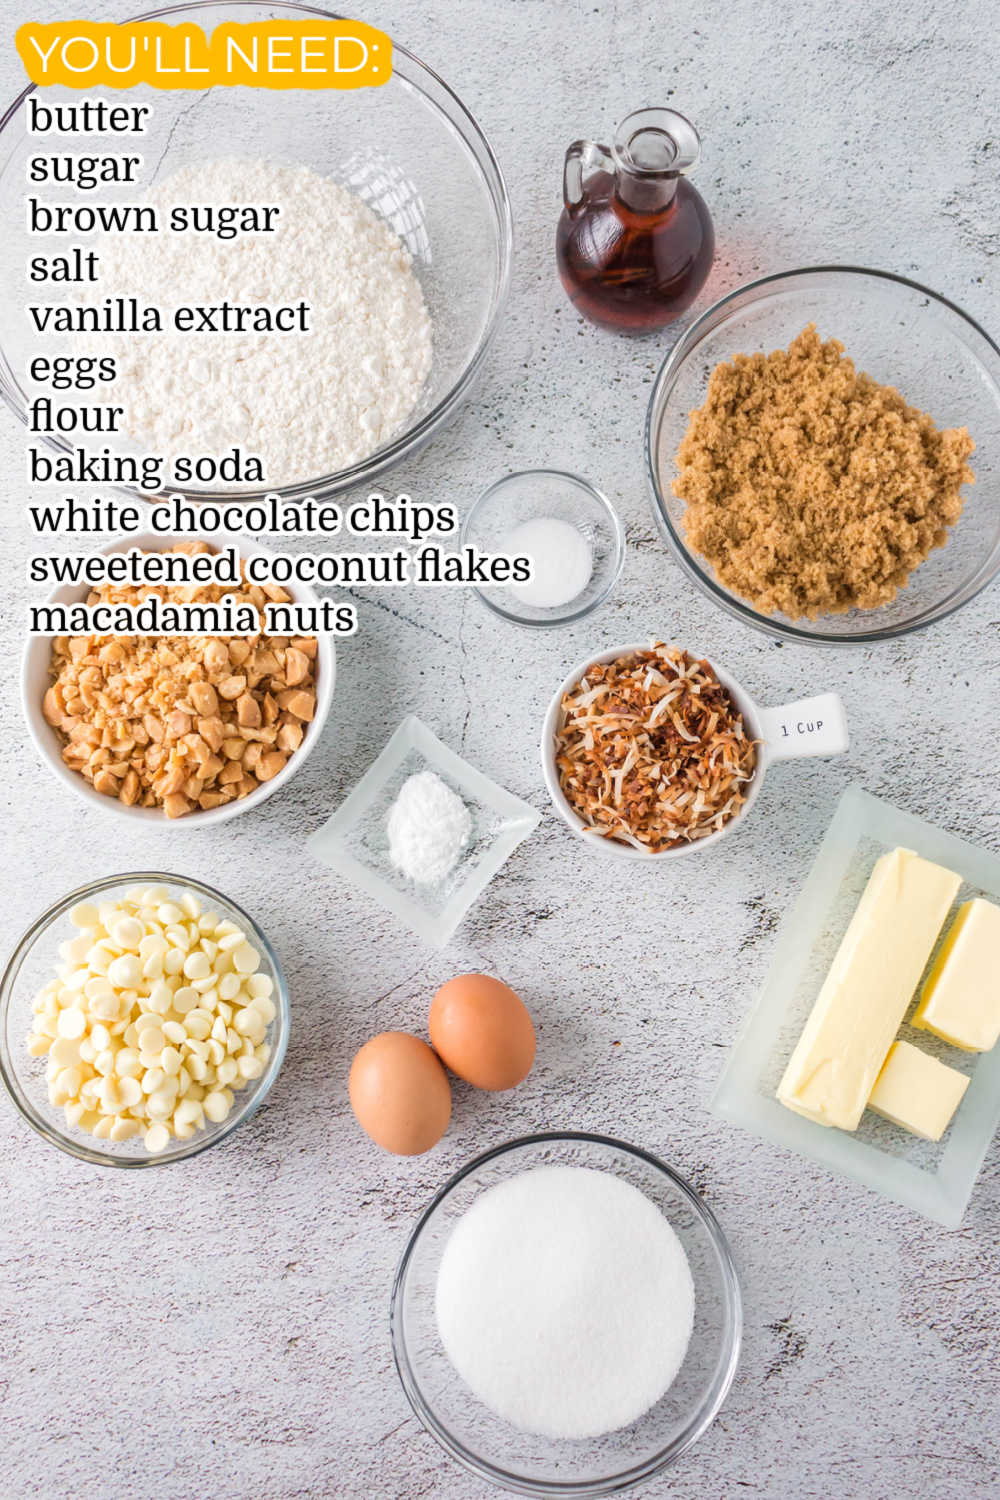 All of the ingredients needed to make this White Chocolate Blondie recipe.